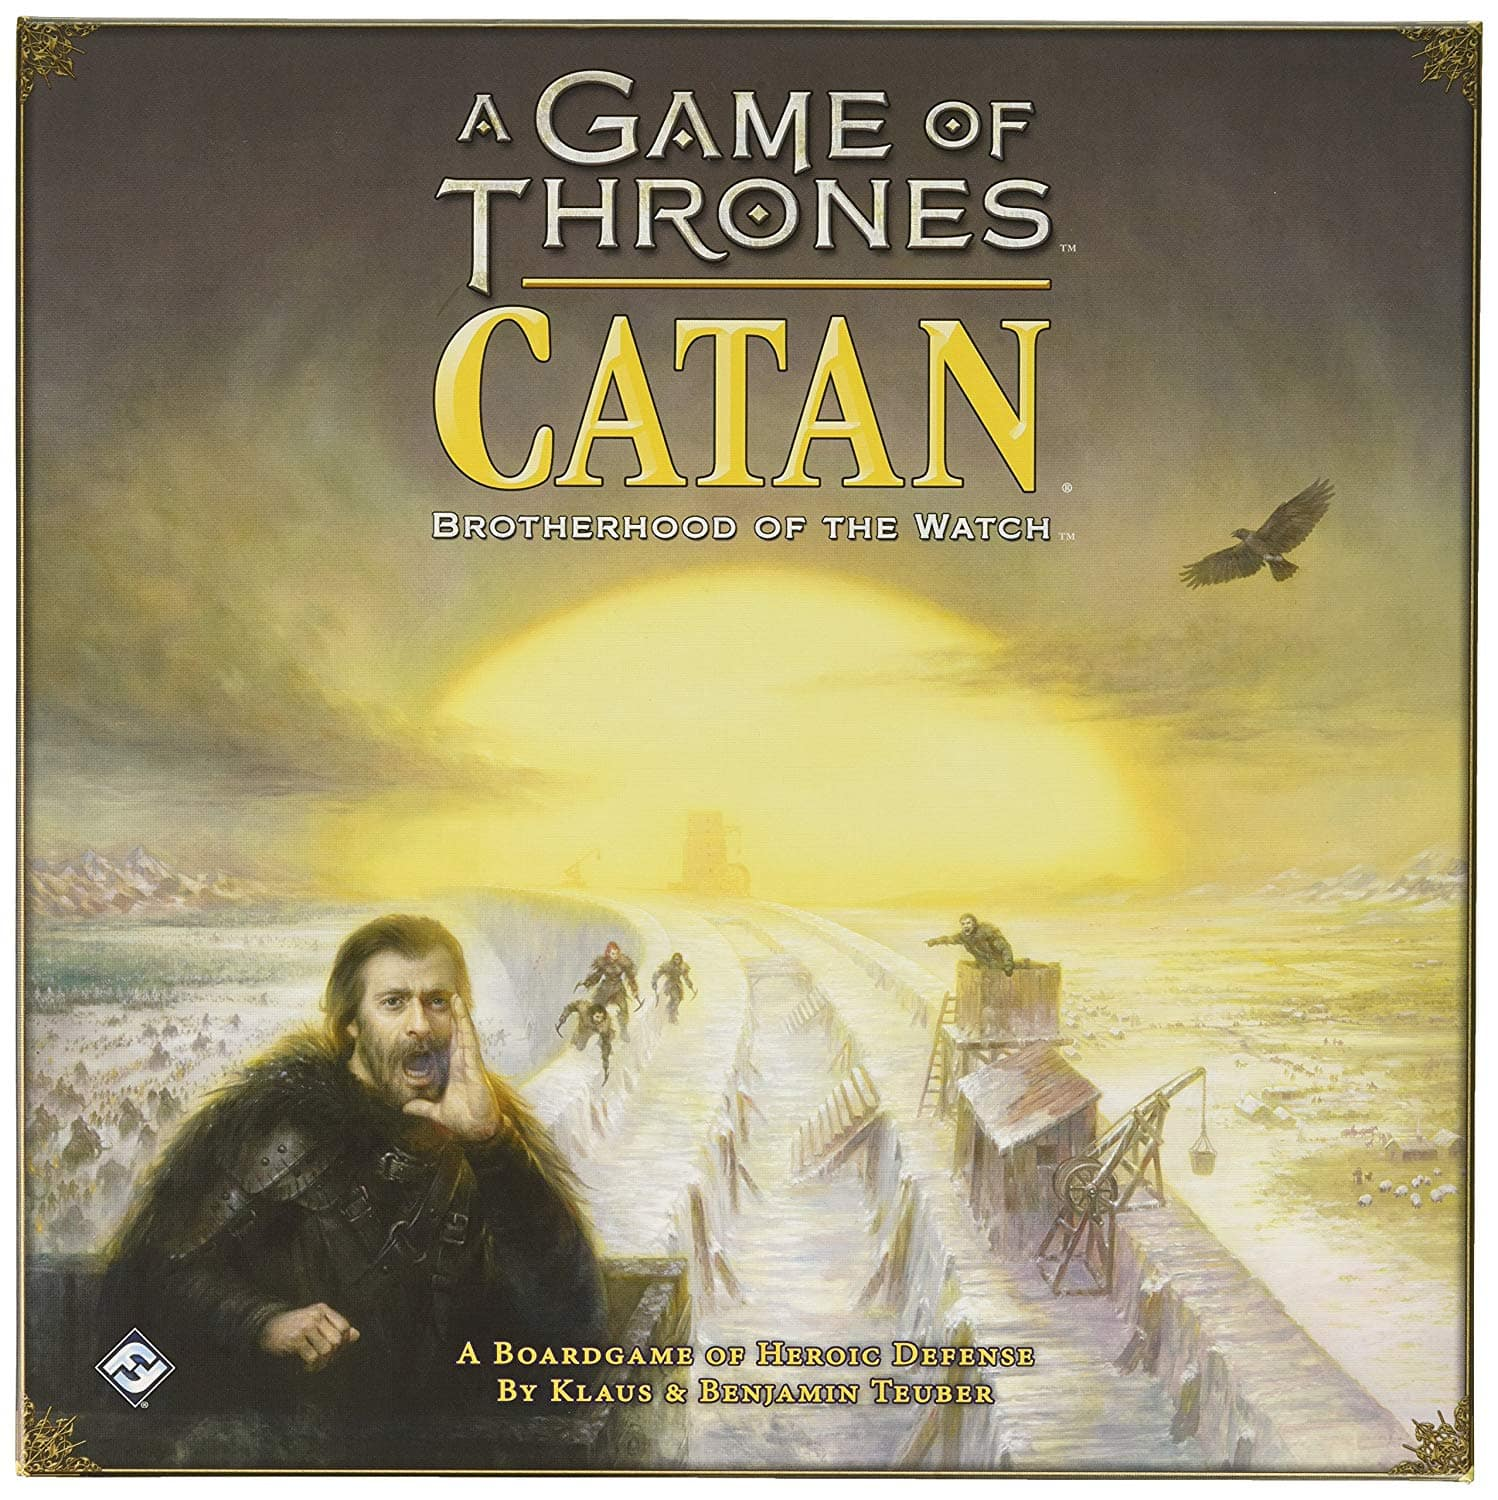 Catan: A Game of Thrones for $37.10 at Amazon